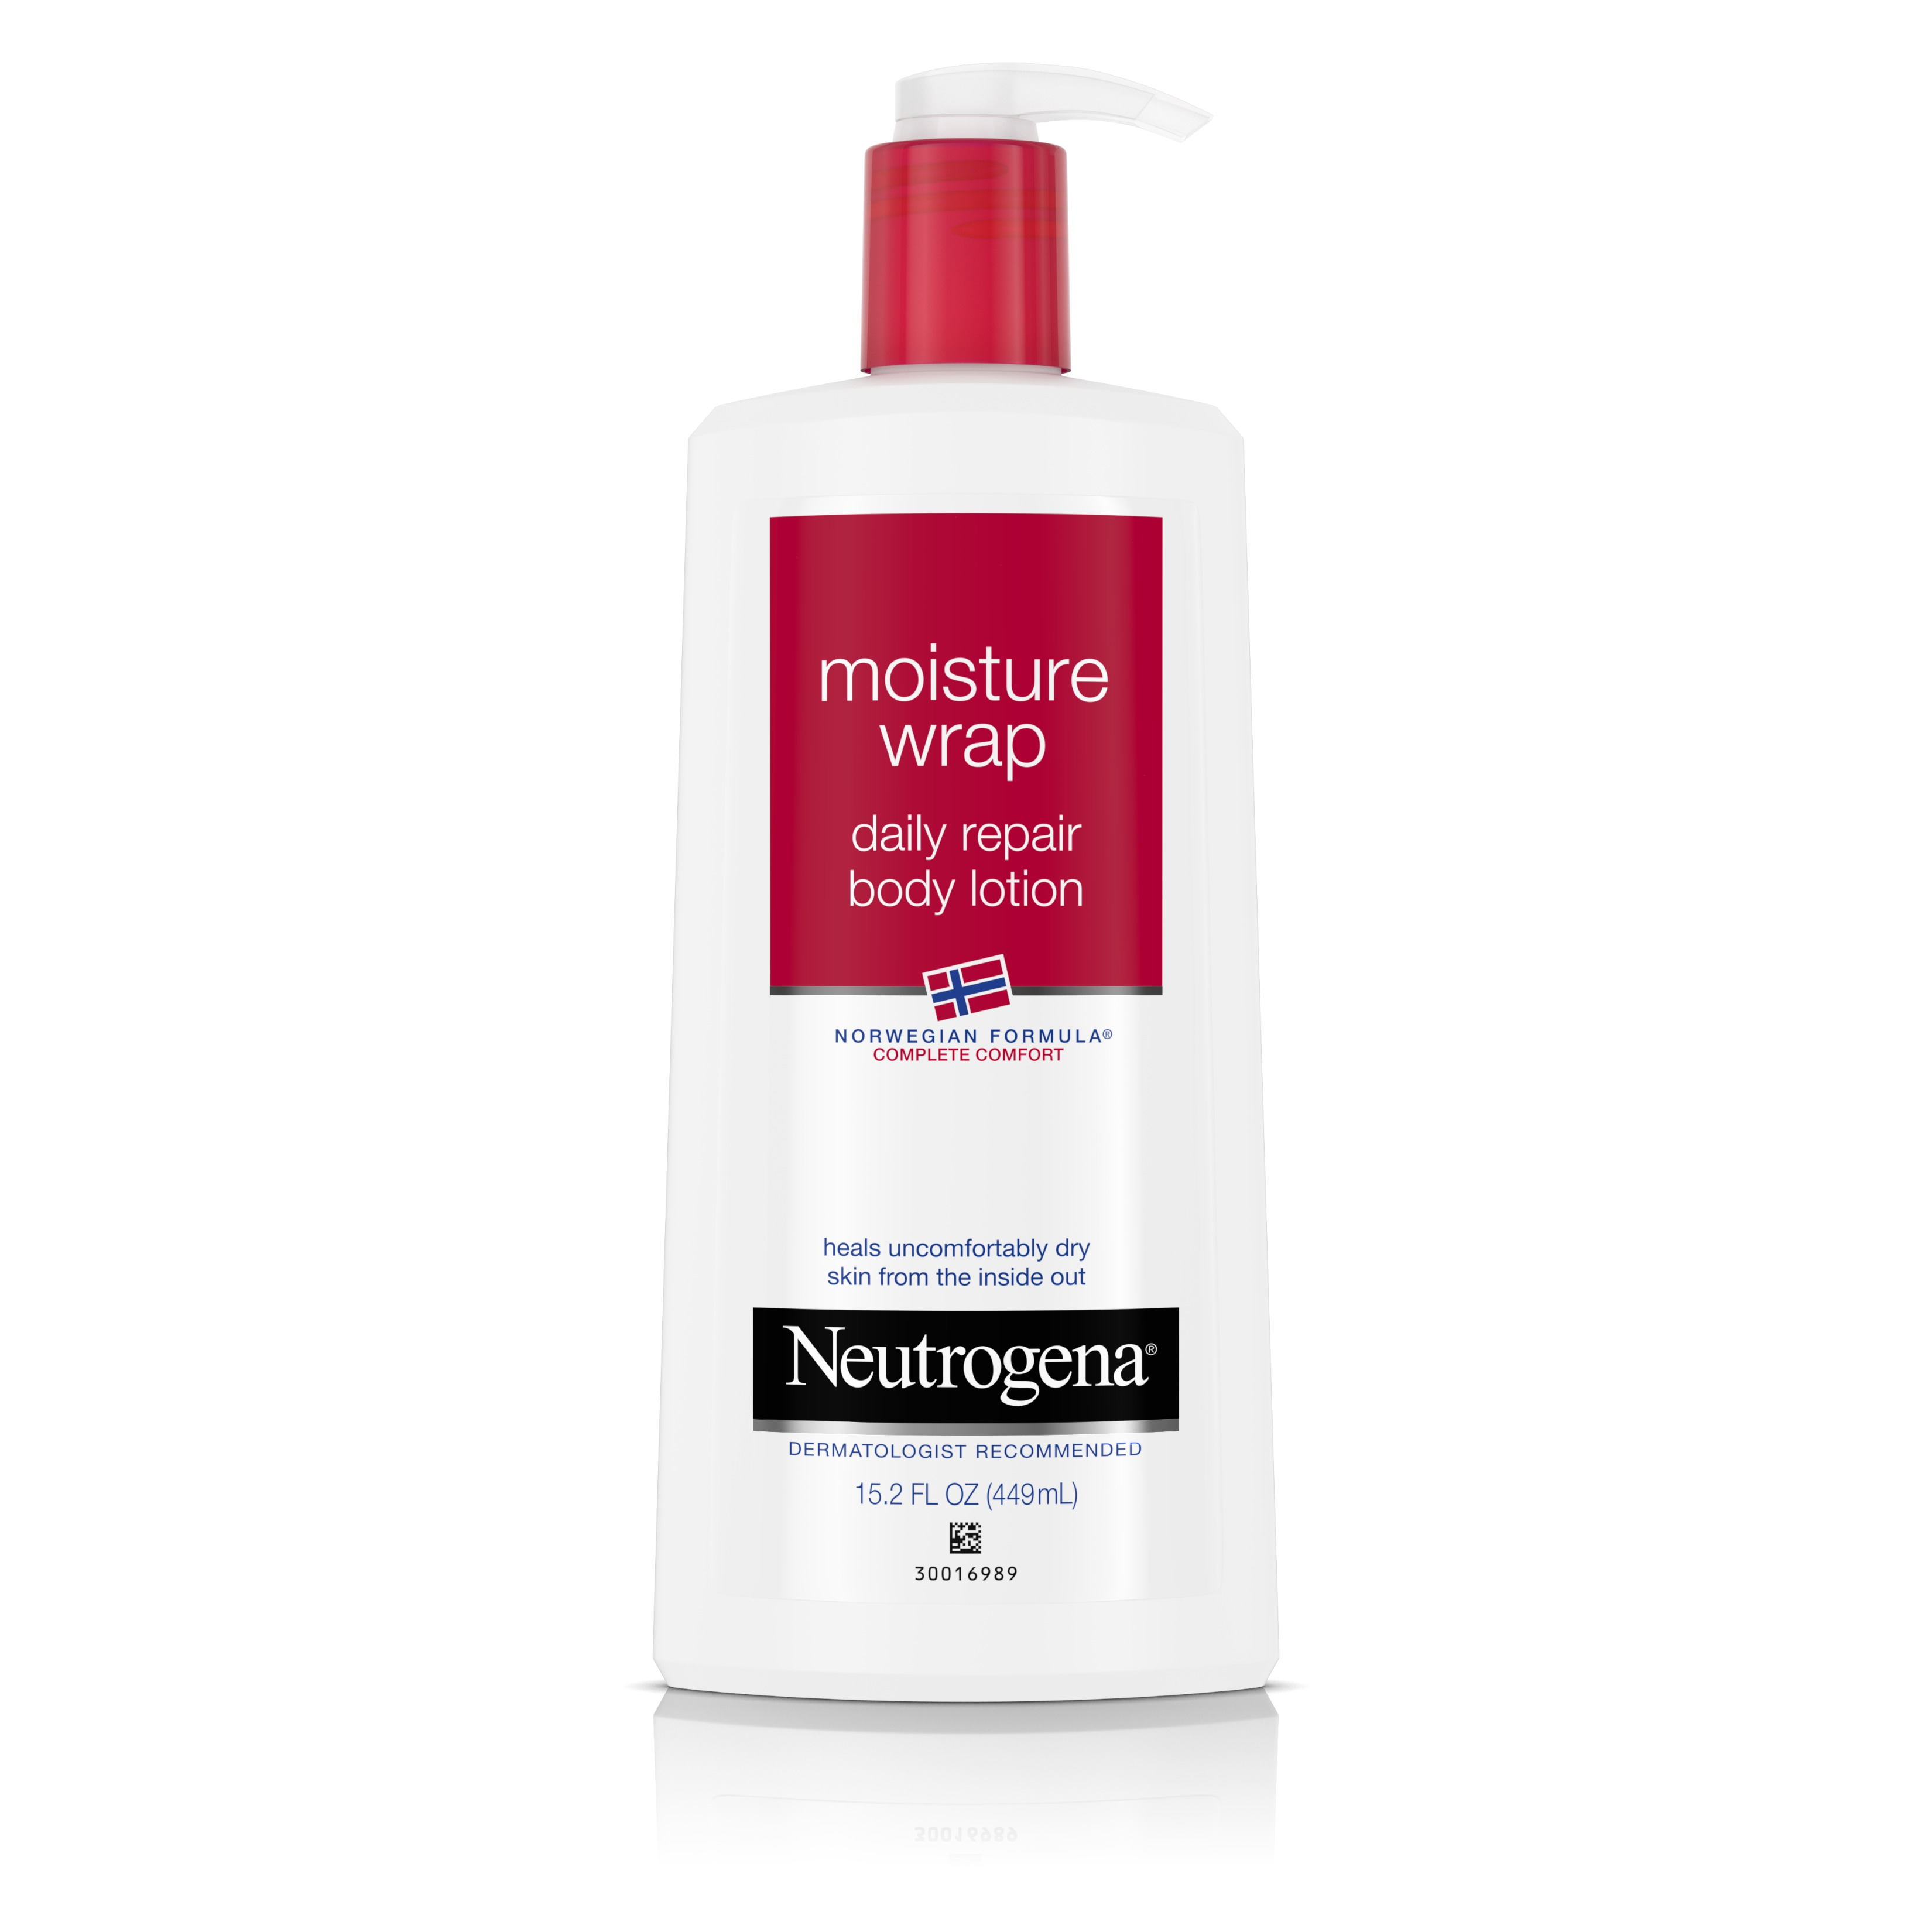 Neutrogena Norwegian Formula Moisture Wrap Daily Repair Body Lotion, 15.2 Oz